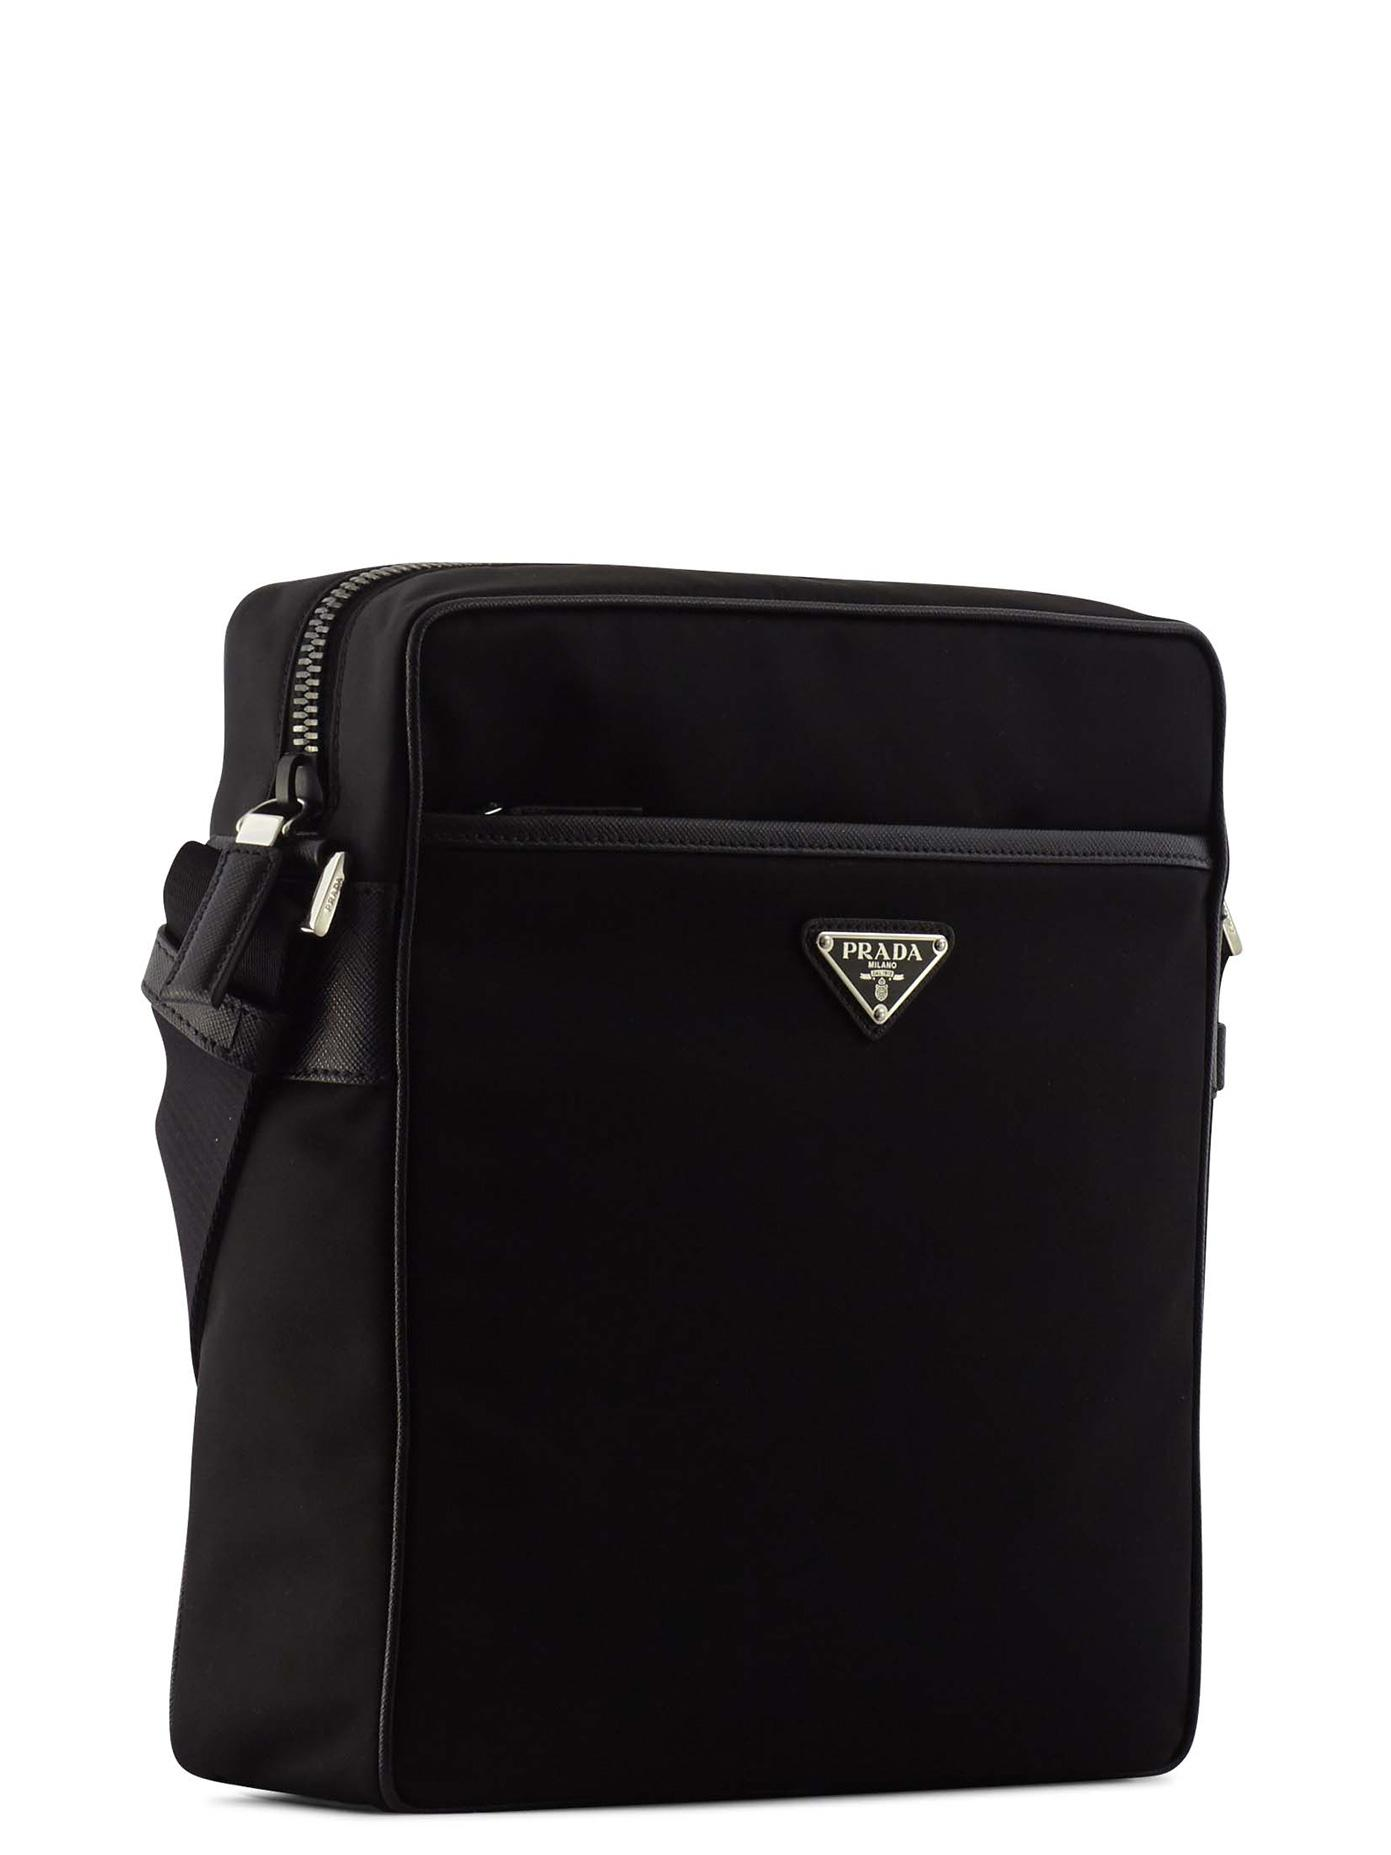 06a06cfff56b Prada Nylon Crossbody Bag in Black for Men - Lyst